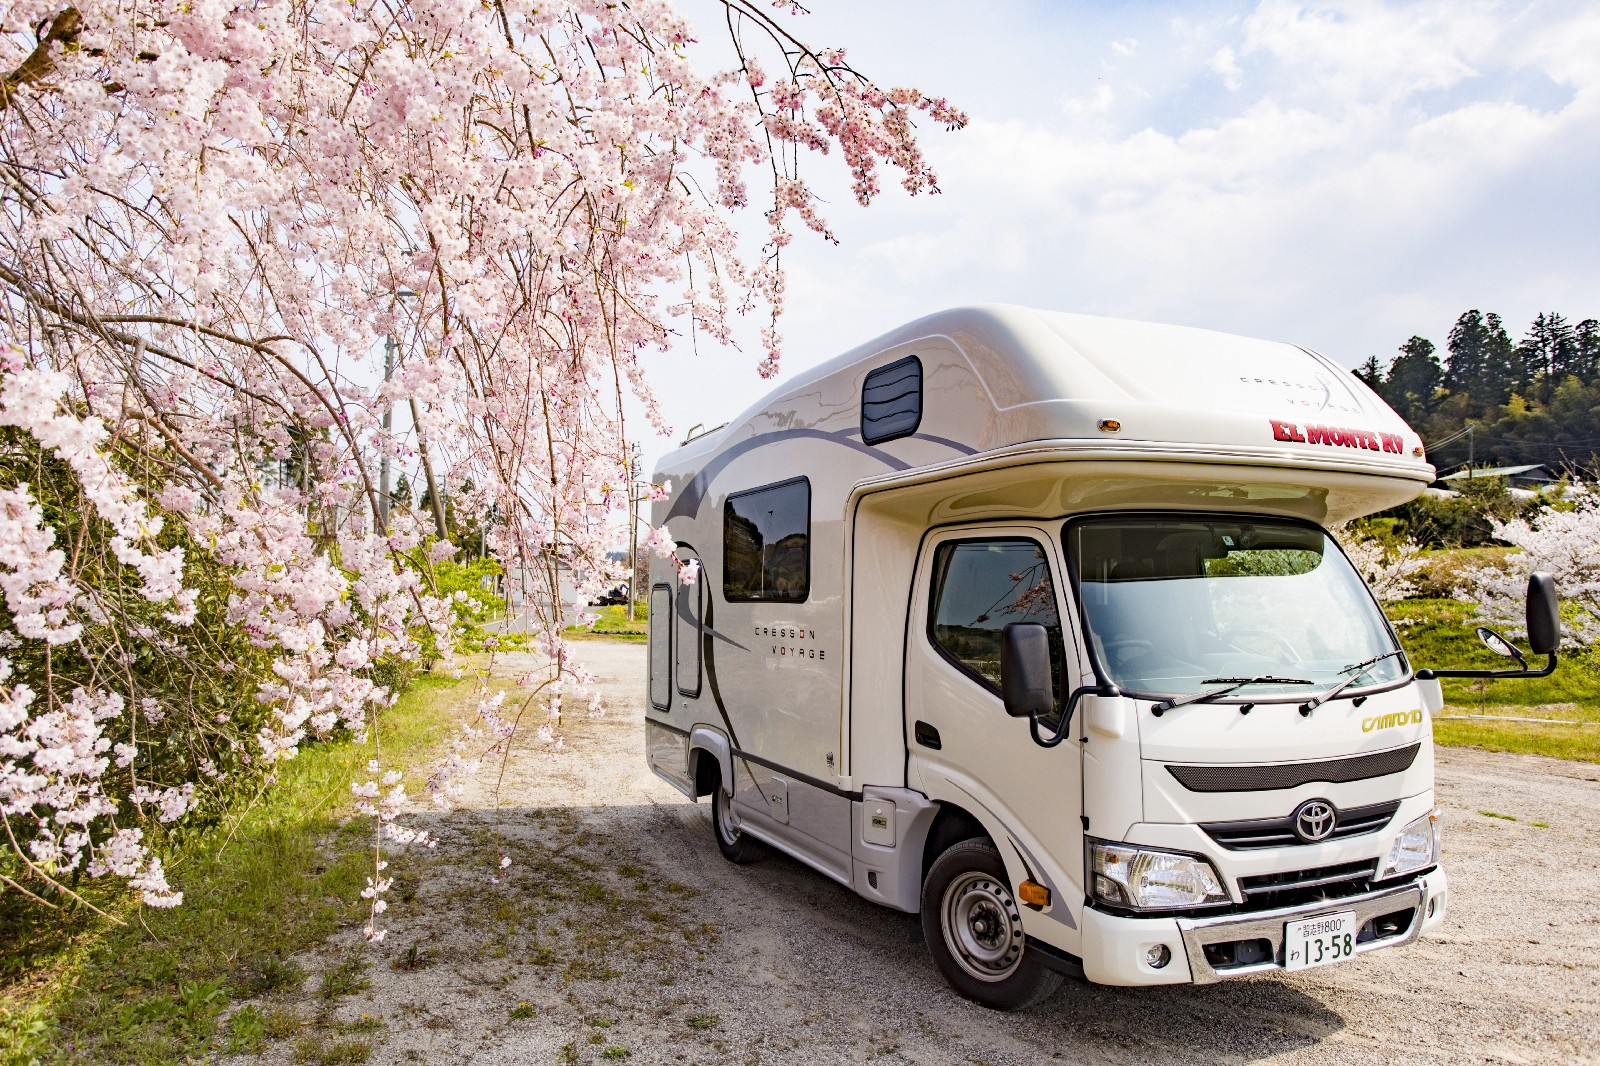 EL MONTE RV JAPAN : Travel around Japan with a Rental Campervan!